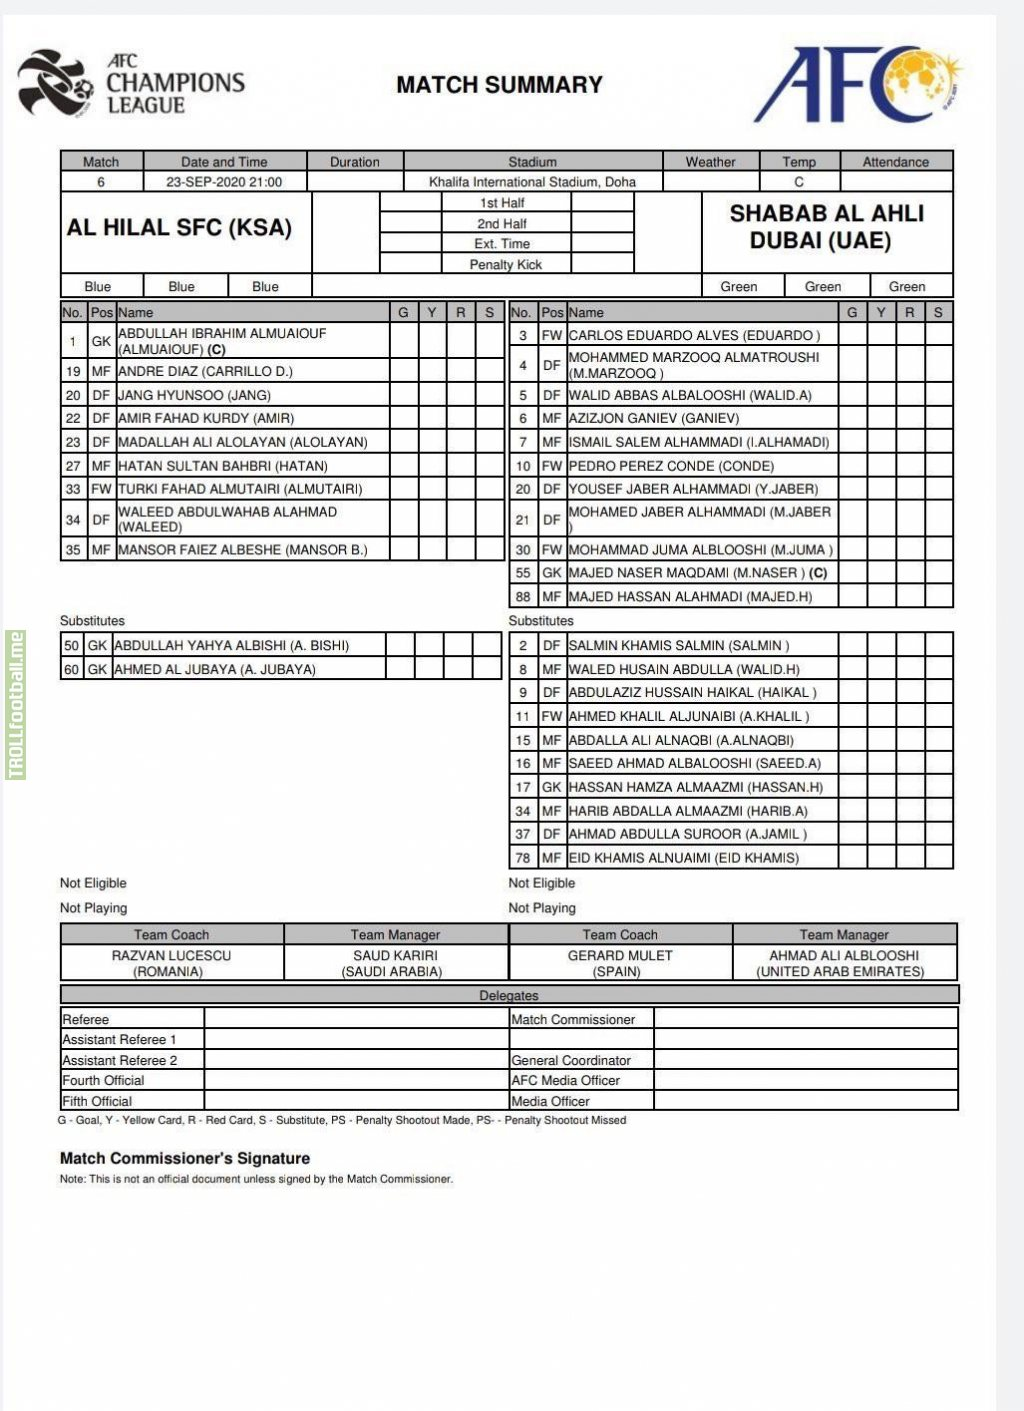 Al Hilal (KSA) vs AL AHLI (UAE) , alhilal starting 11 only contain 8 players duo to spread of corona among the players , and the AFC refuse to postpone the match .